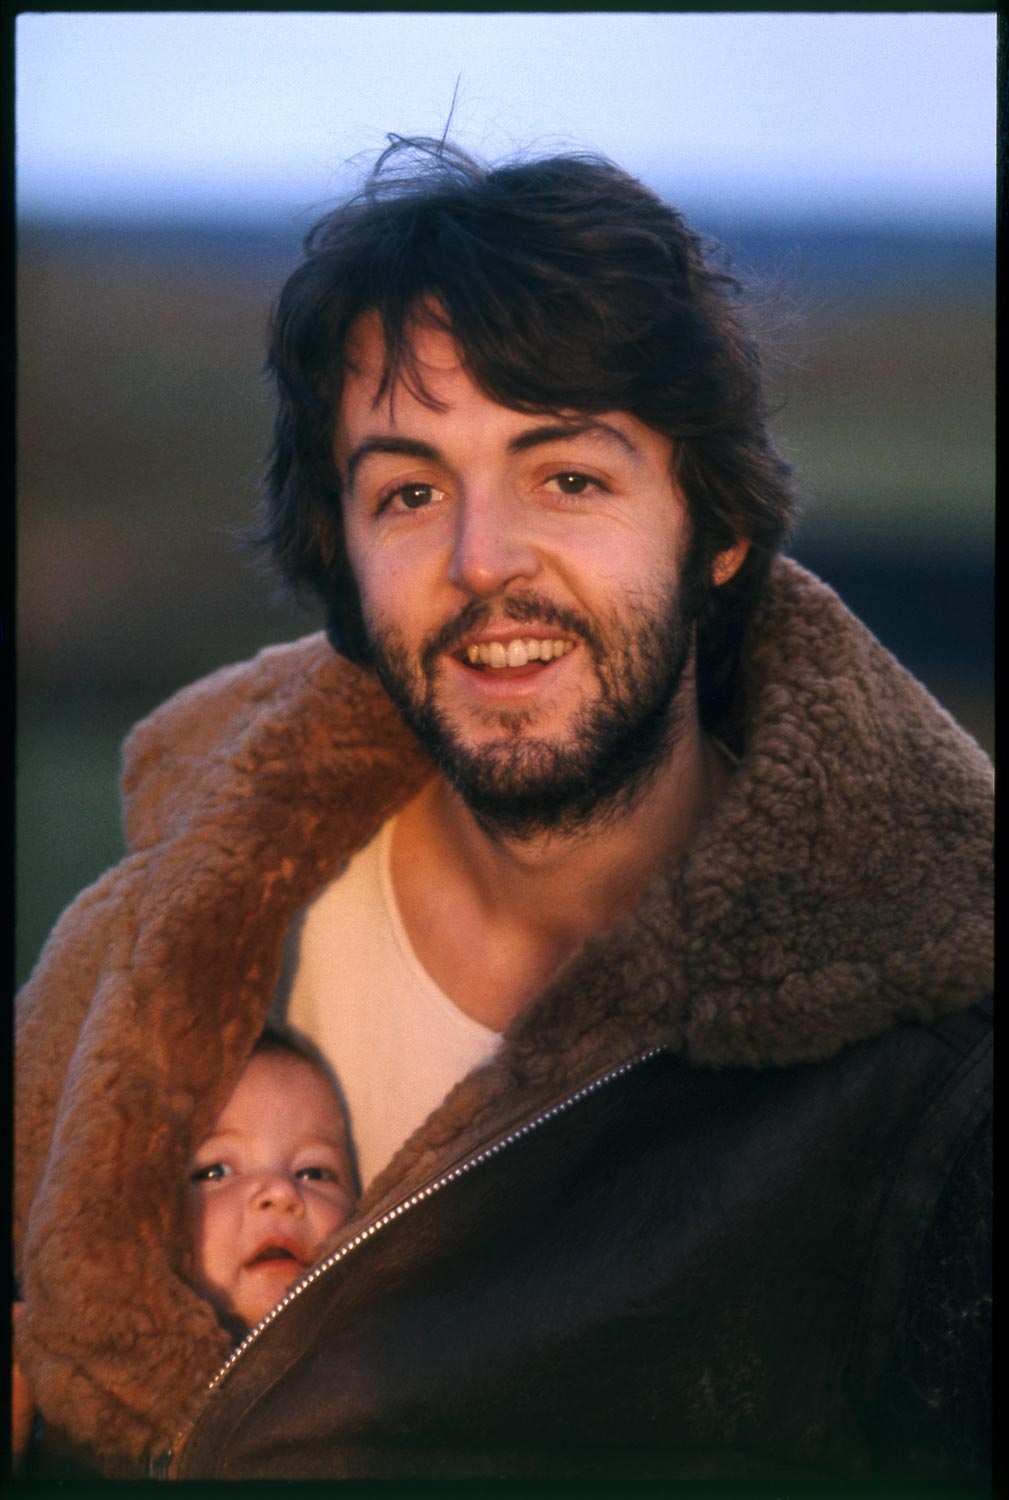 photograph of Paul McCartney wearing large shearling coat with baby inside